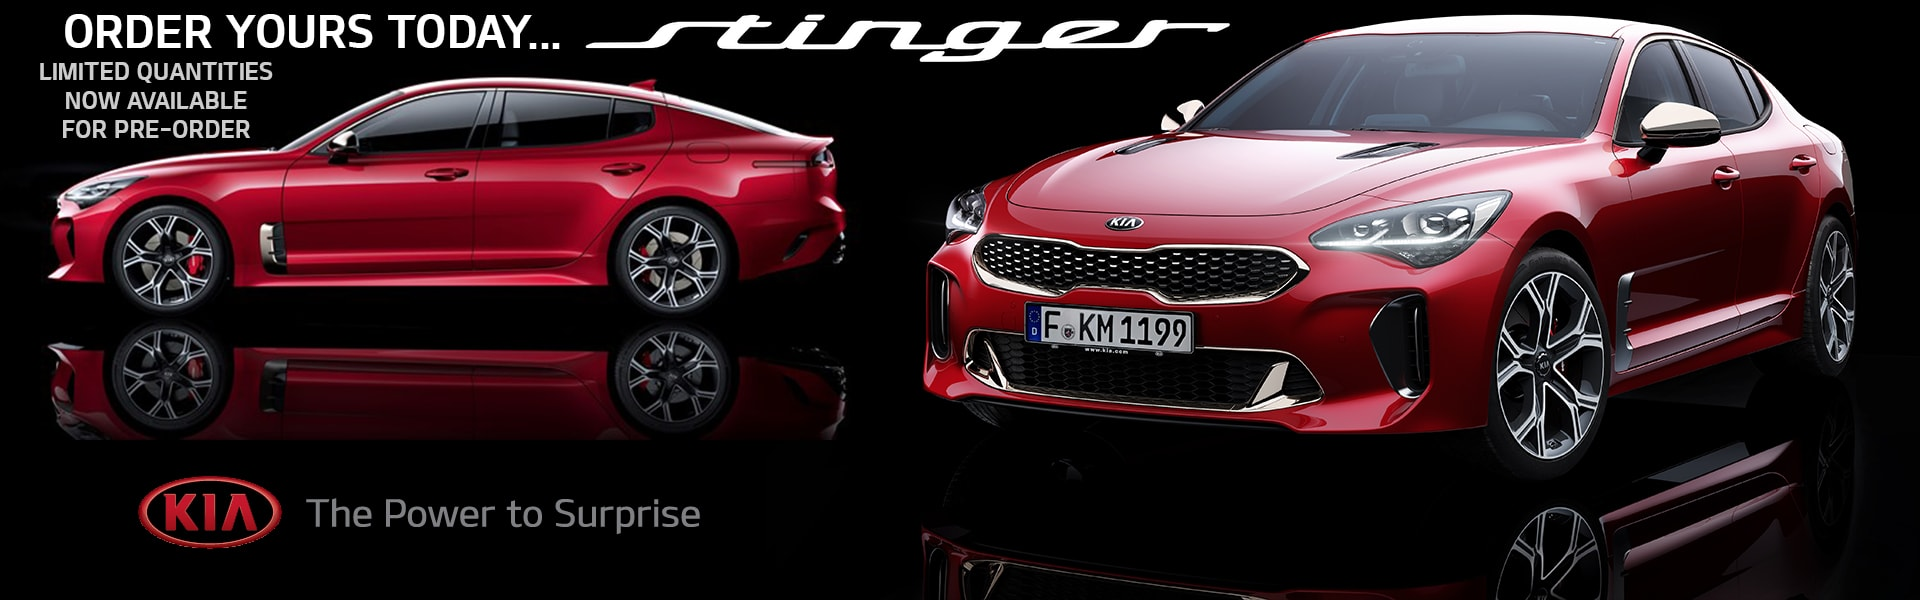 2018 Kia Stinger Now Available For Pre-Order